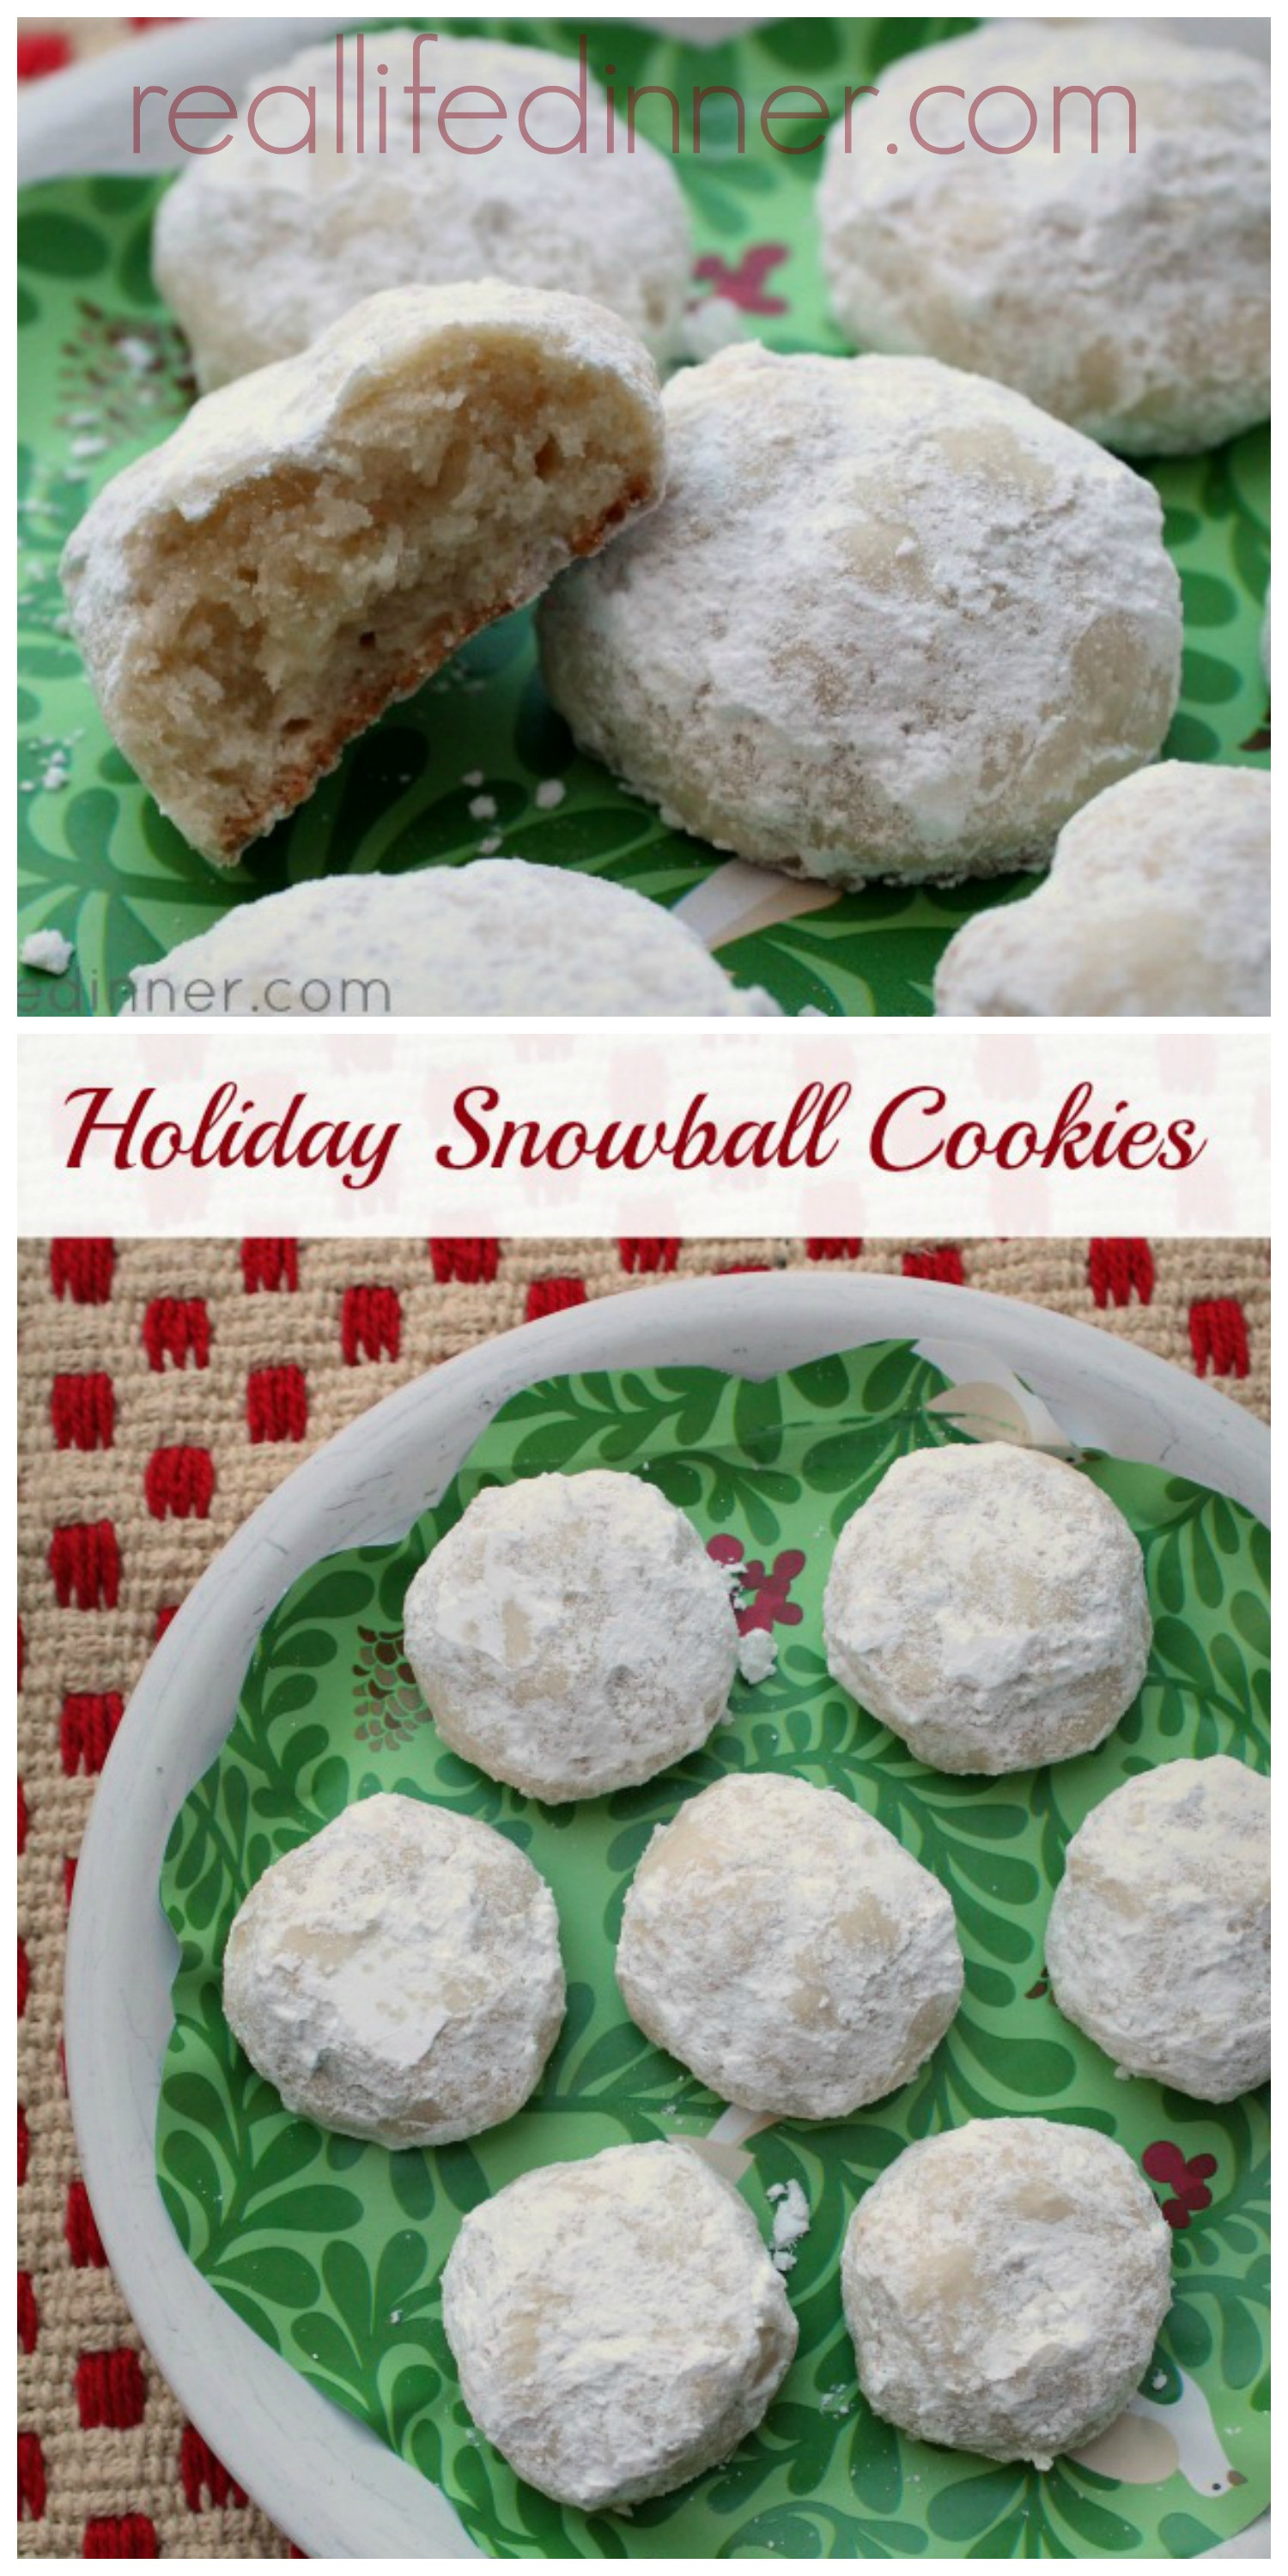 Mexico Christmas Cookies  Holiday Snowball Cookies